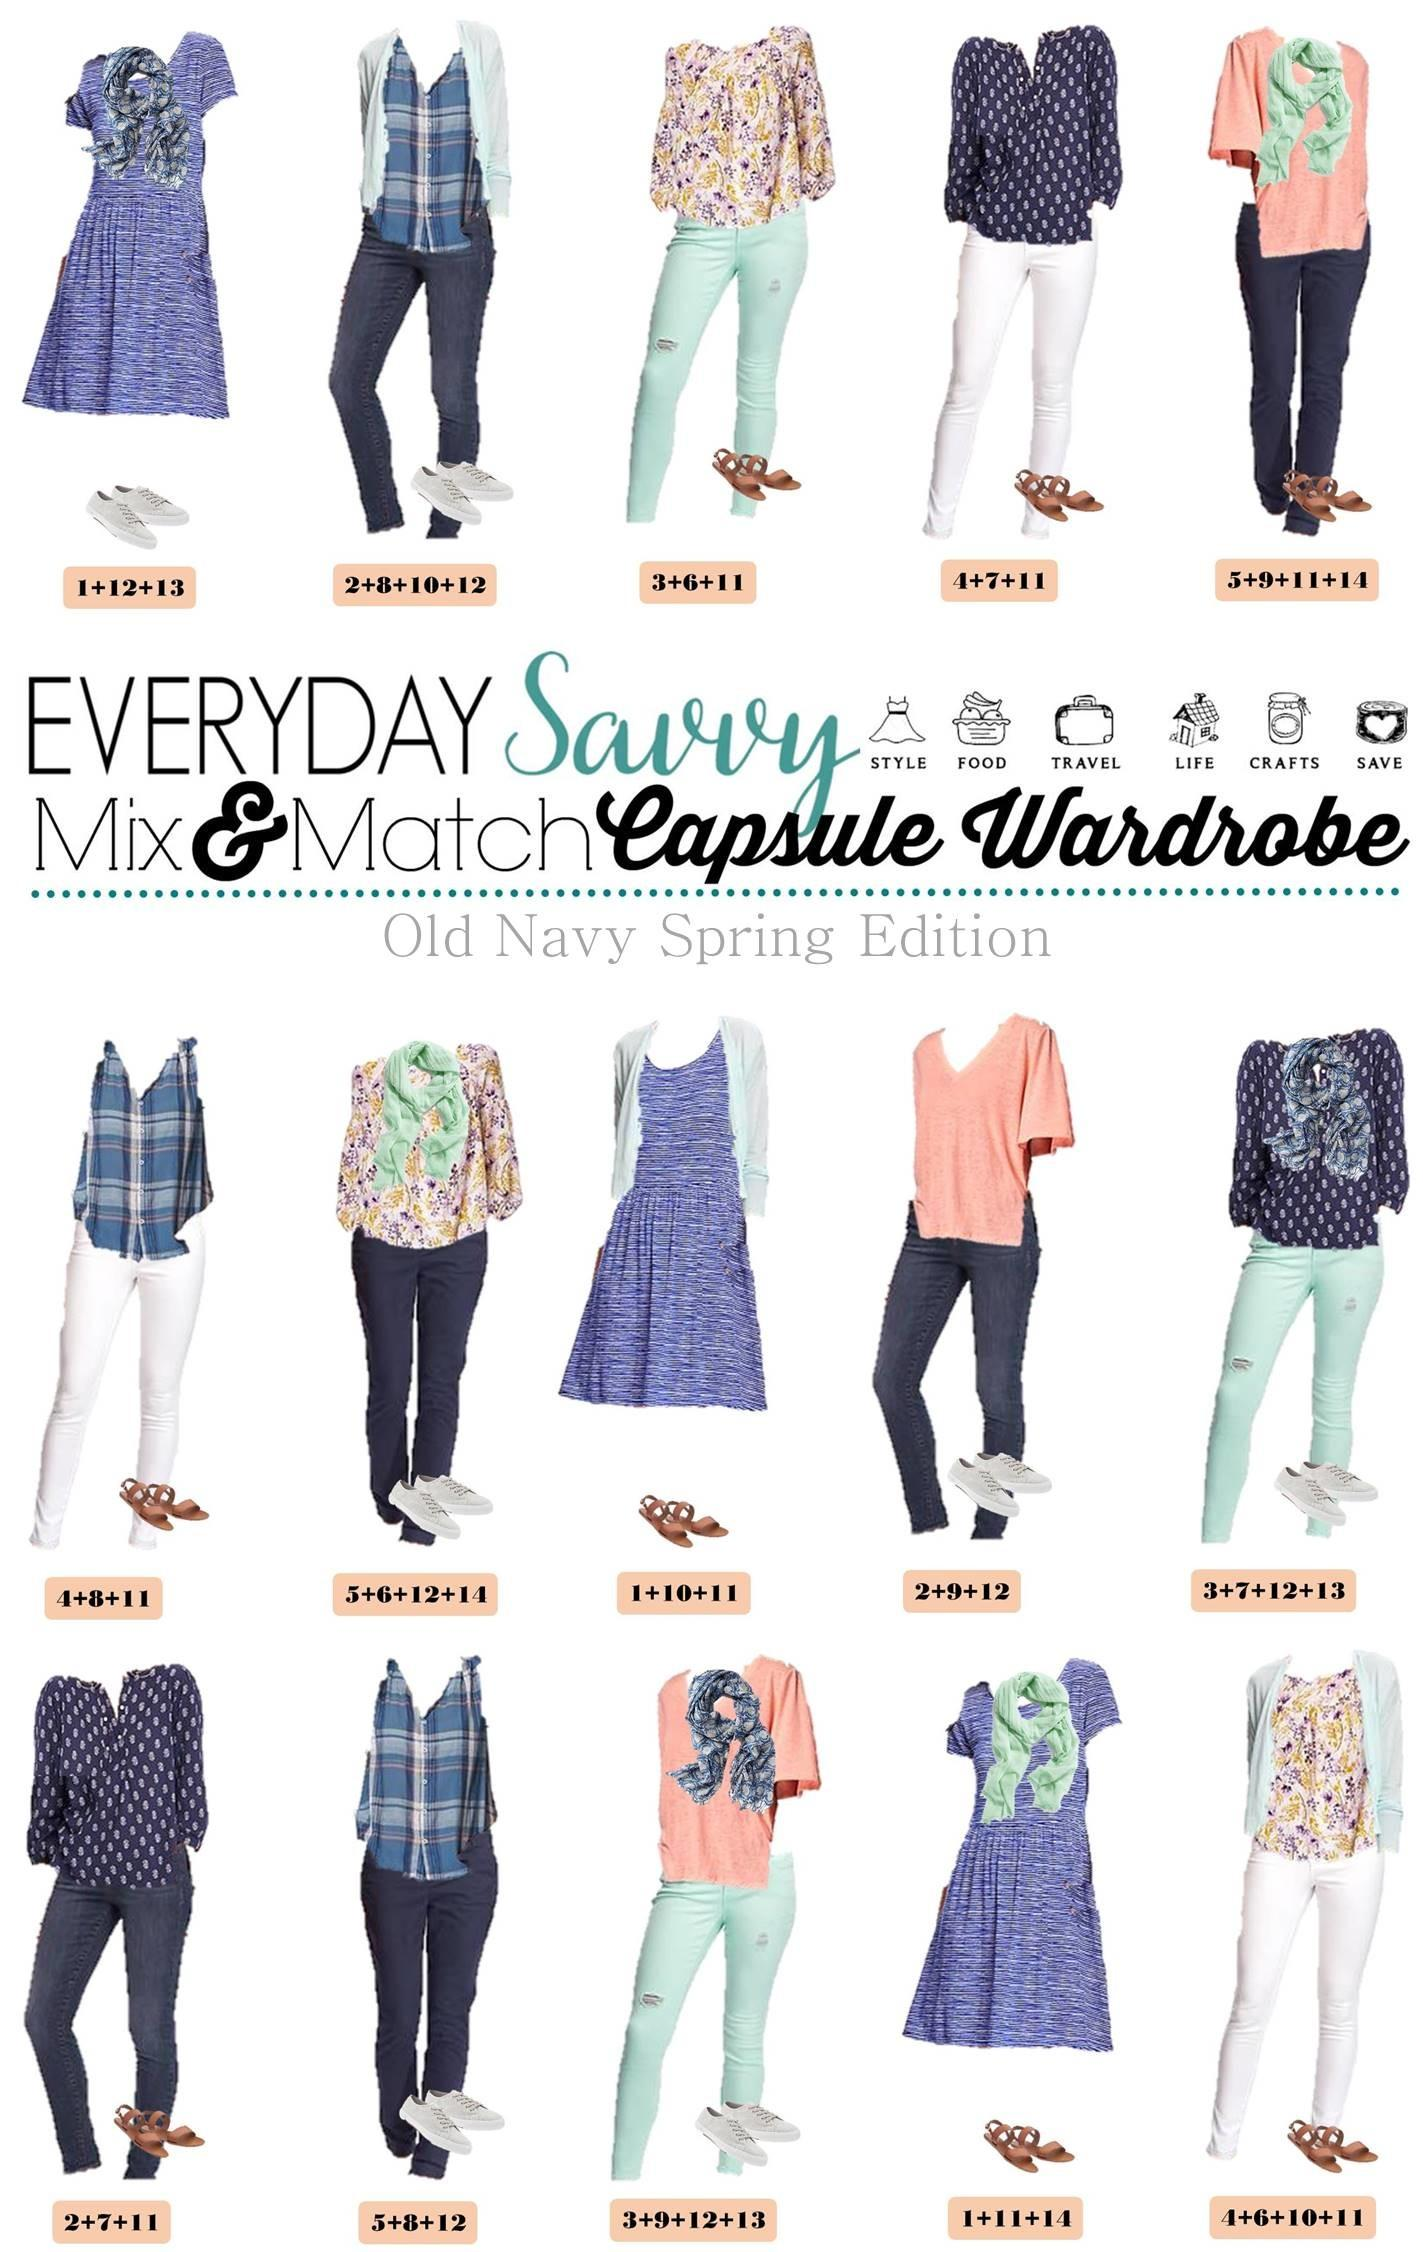 Spring Old Navy Capsule Wardrobe Mix Match Outfits